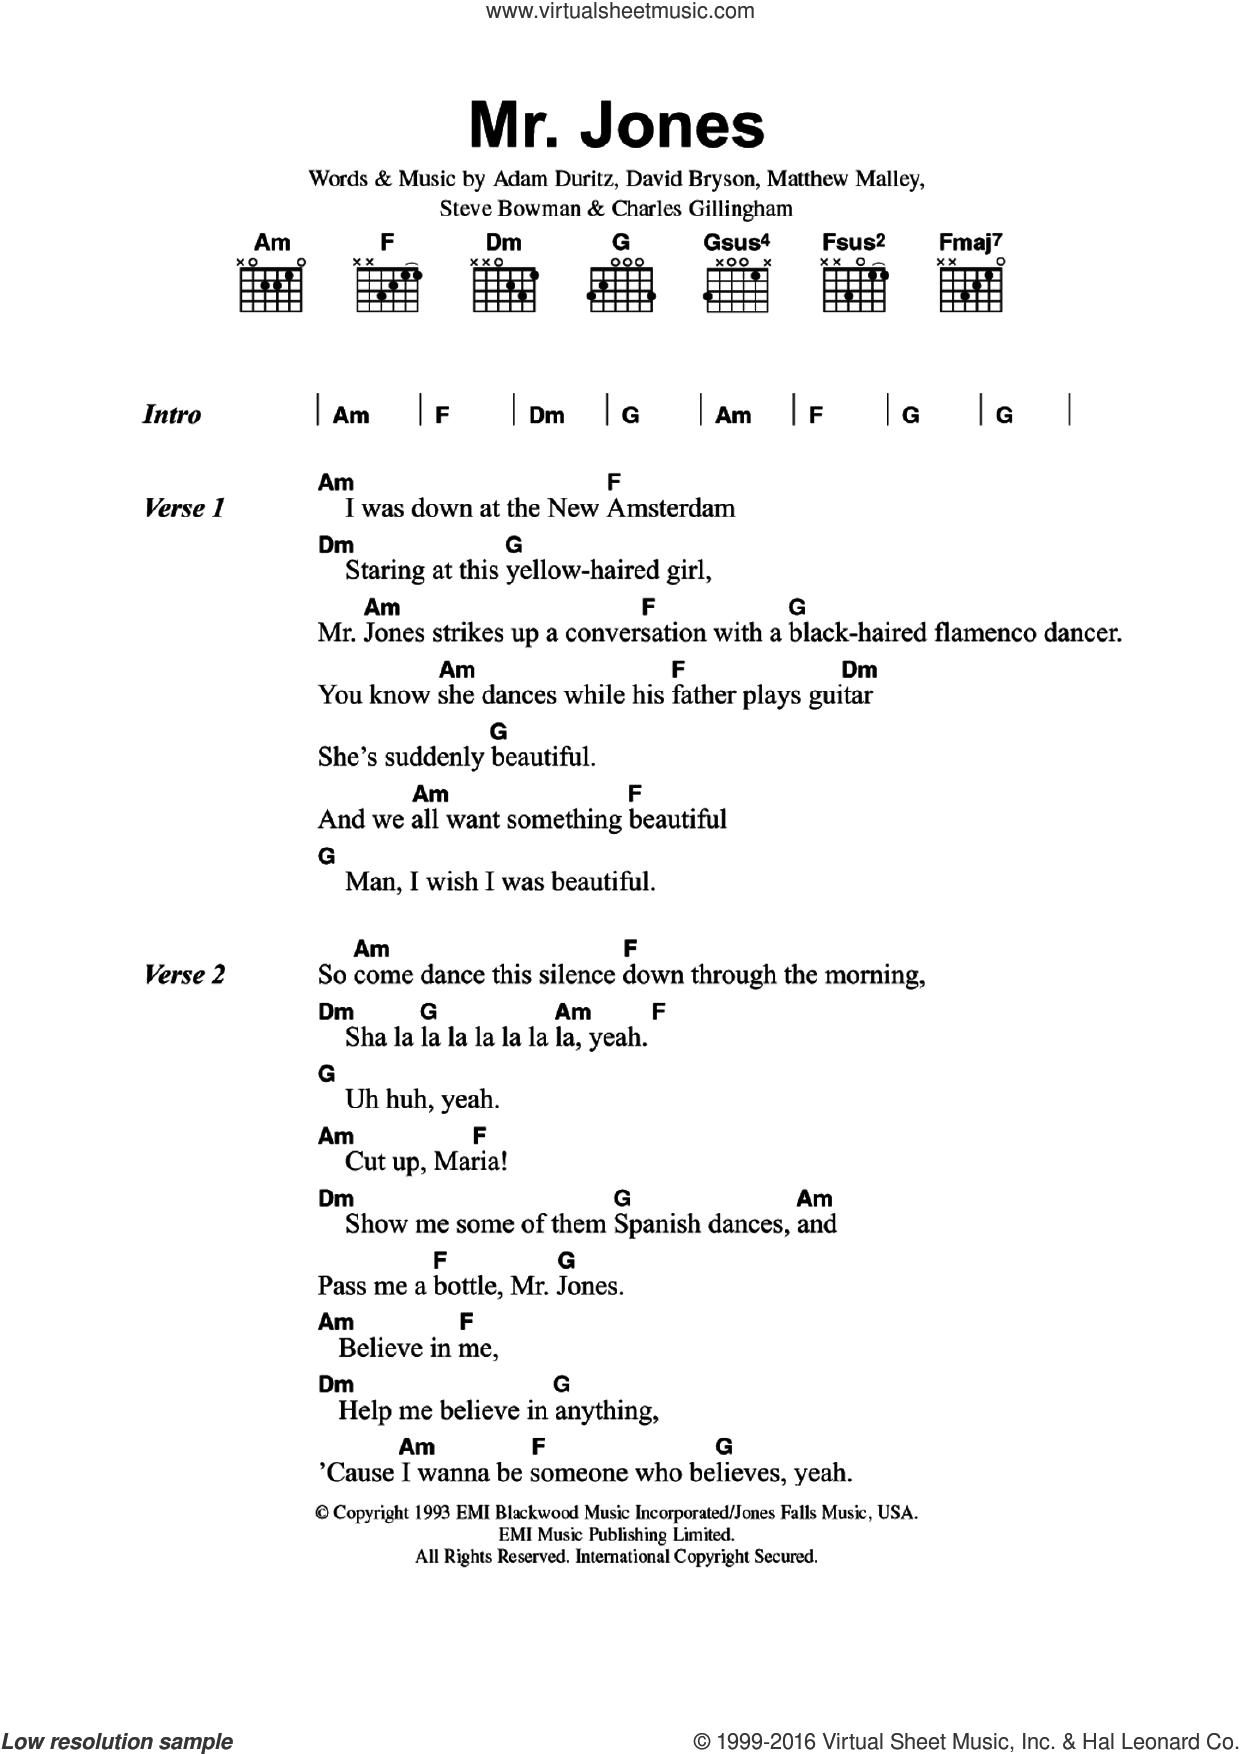 Mr. Jones sheet music for guitar (chords) by Counting Crows, Adam Duritz, Charles Gillingham, David Bryson, Matthew Malley and Steve Bowman, intermediate skill level